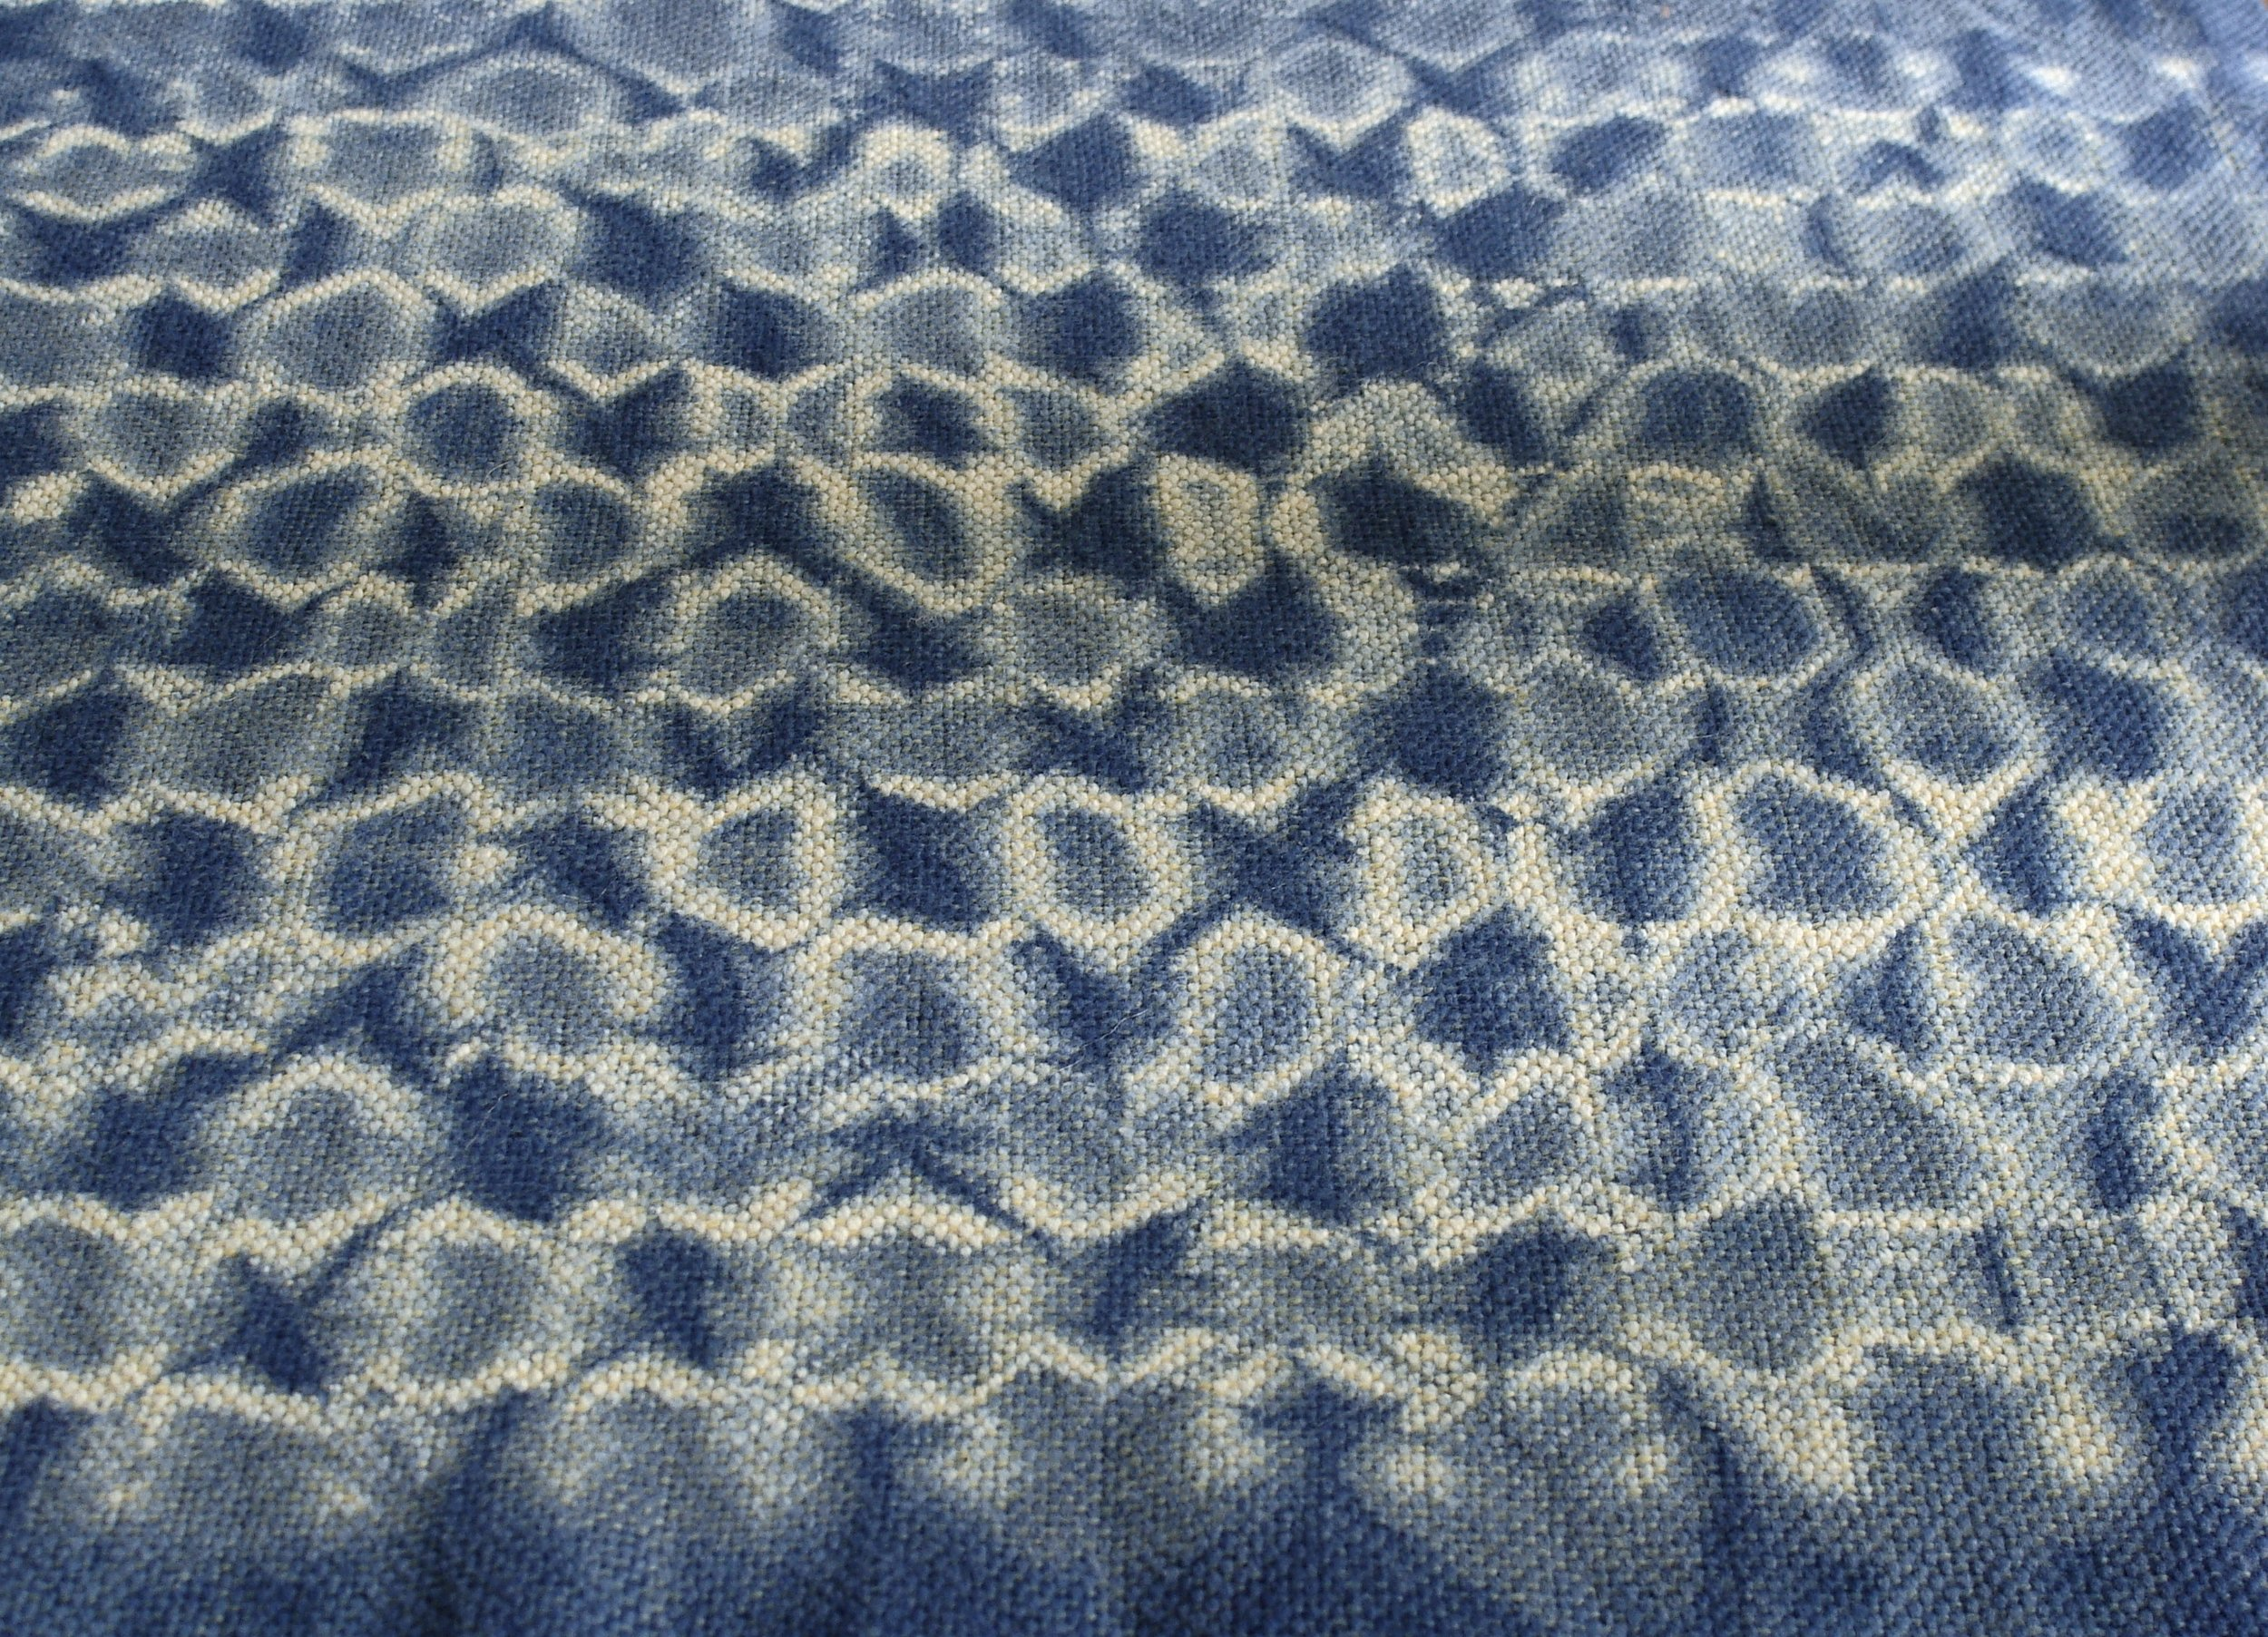 close up of woven shibori table runner dyed with indigo